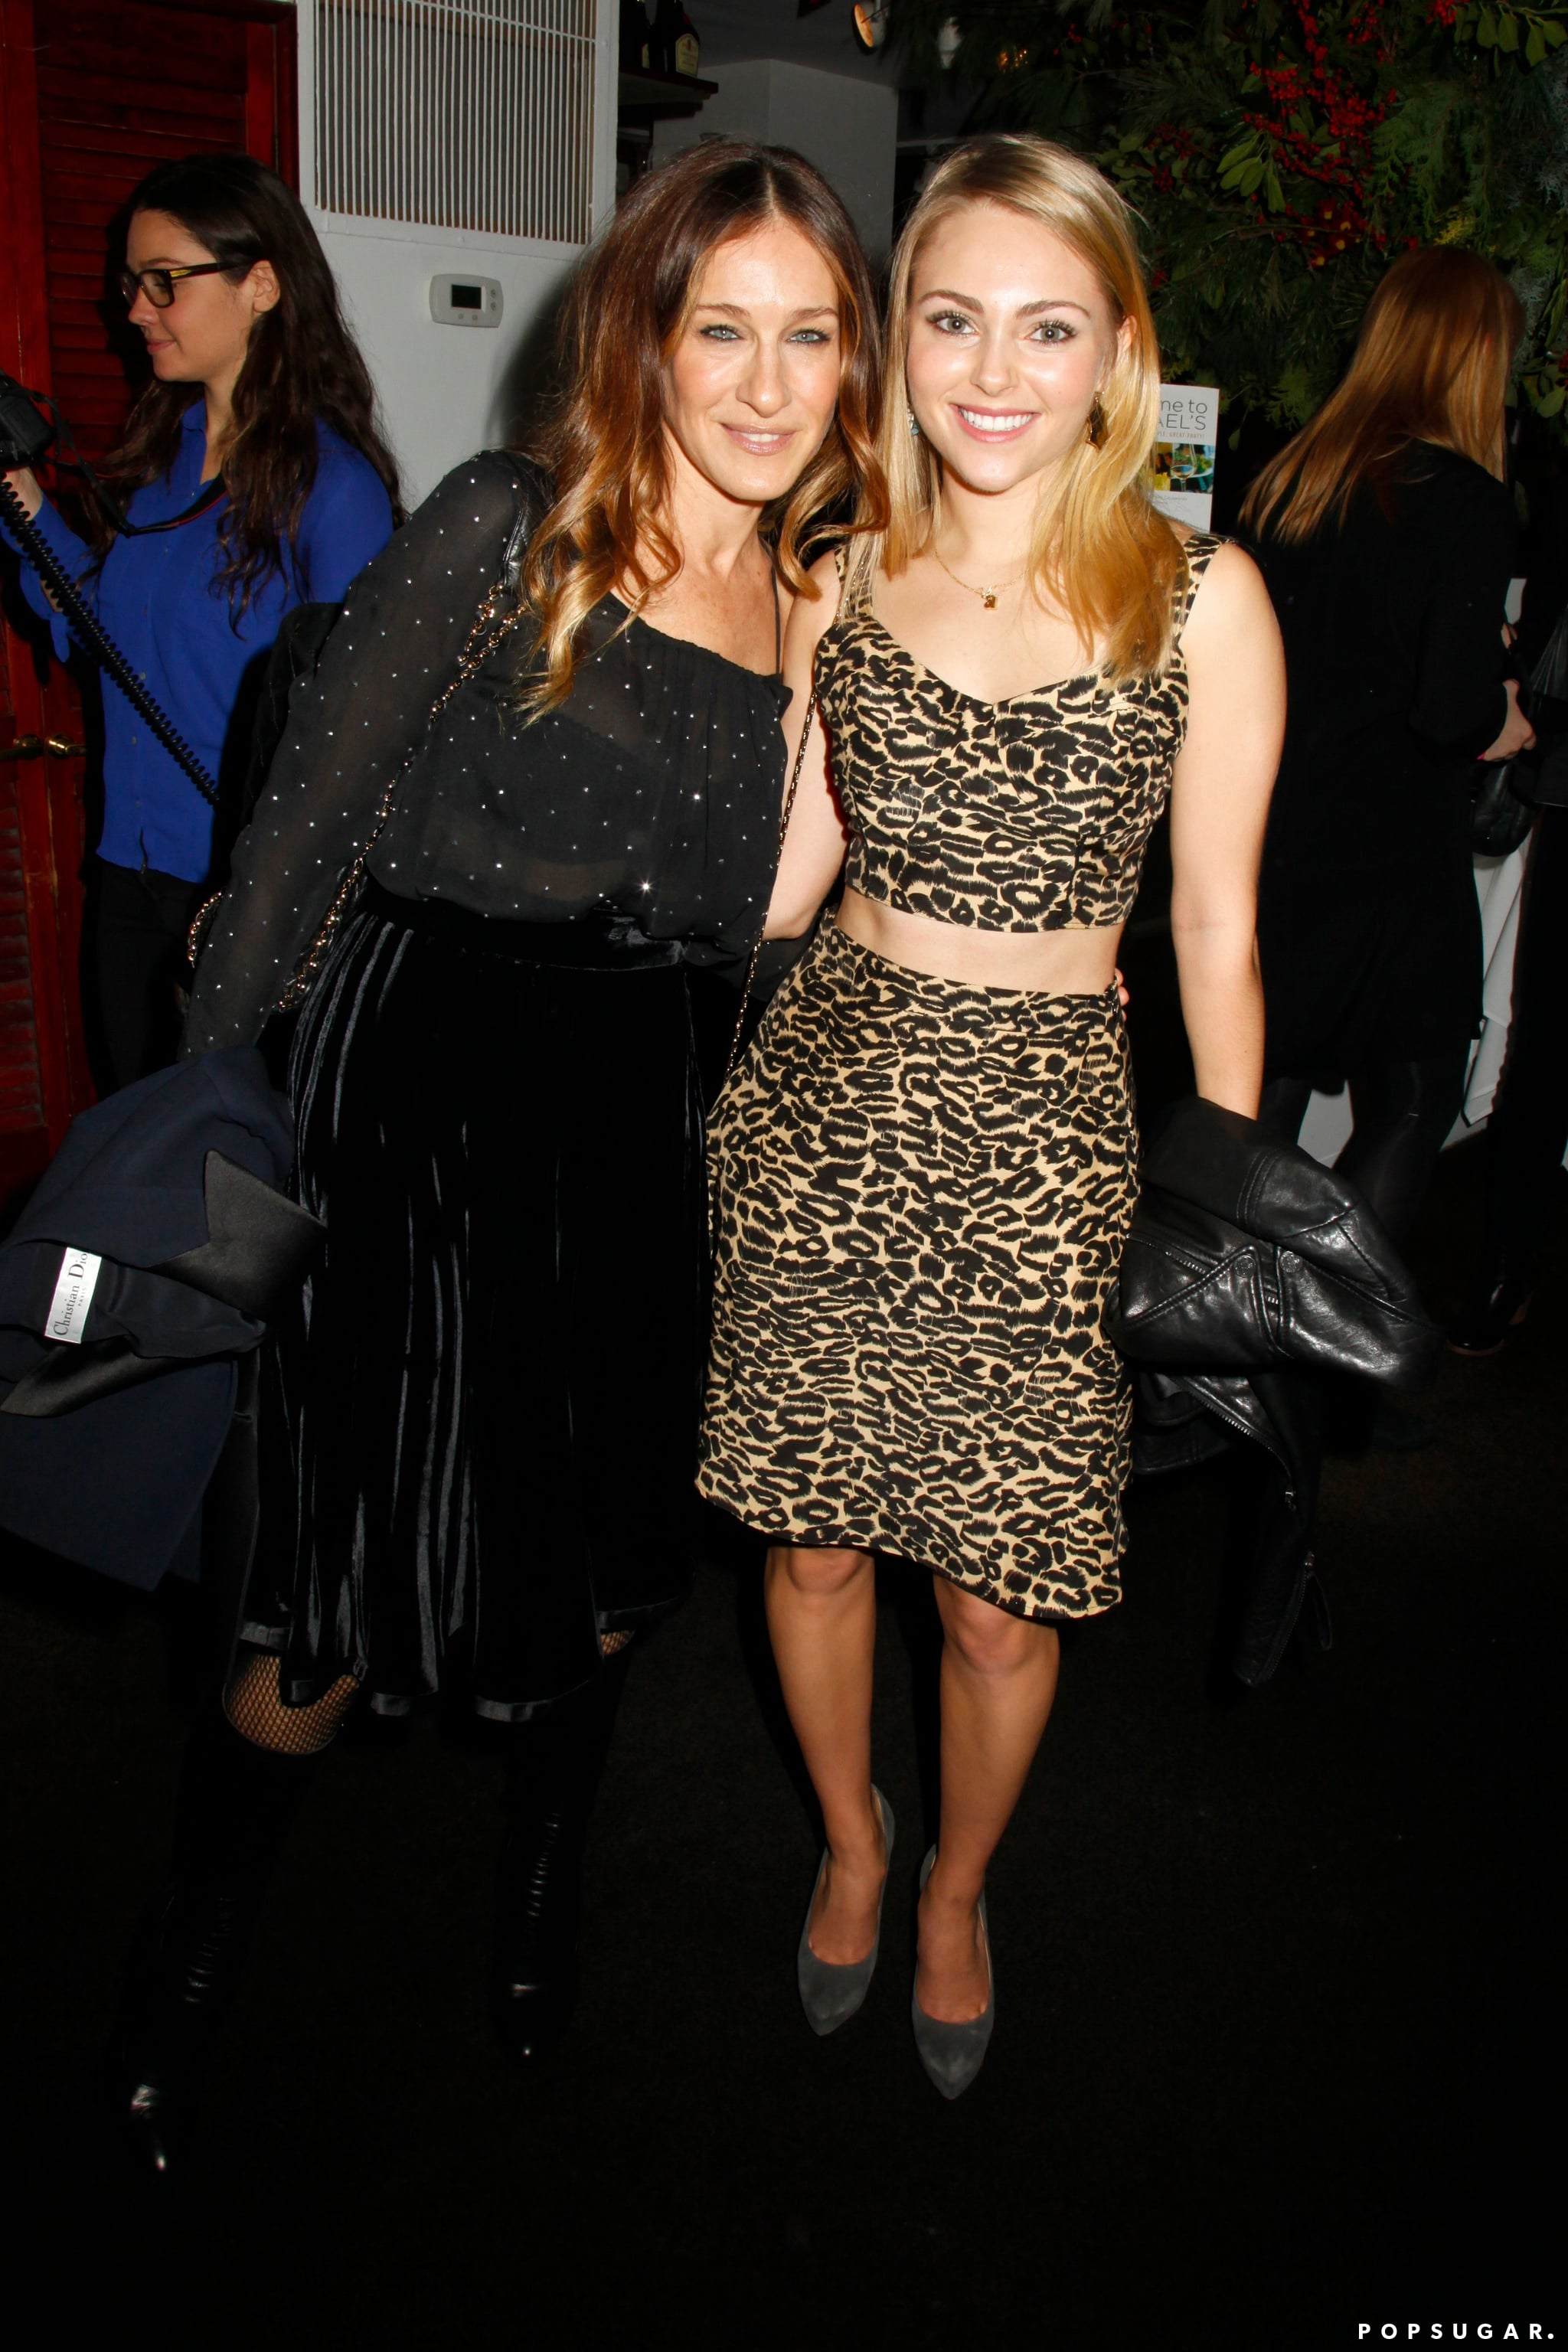 Sarah Jessica Parker linked up with The Carrie Diaries star AnnaSophia Robb at Cosmopolitan magazine's Cosmo 100 lunch in NYC.